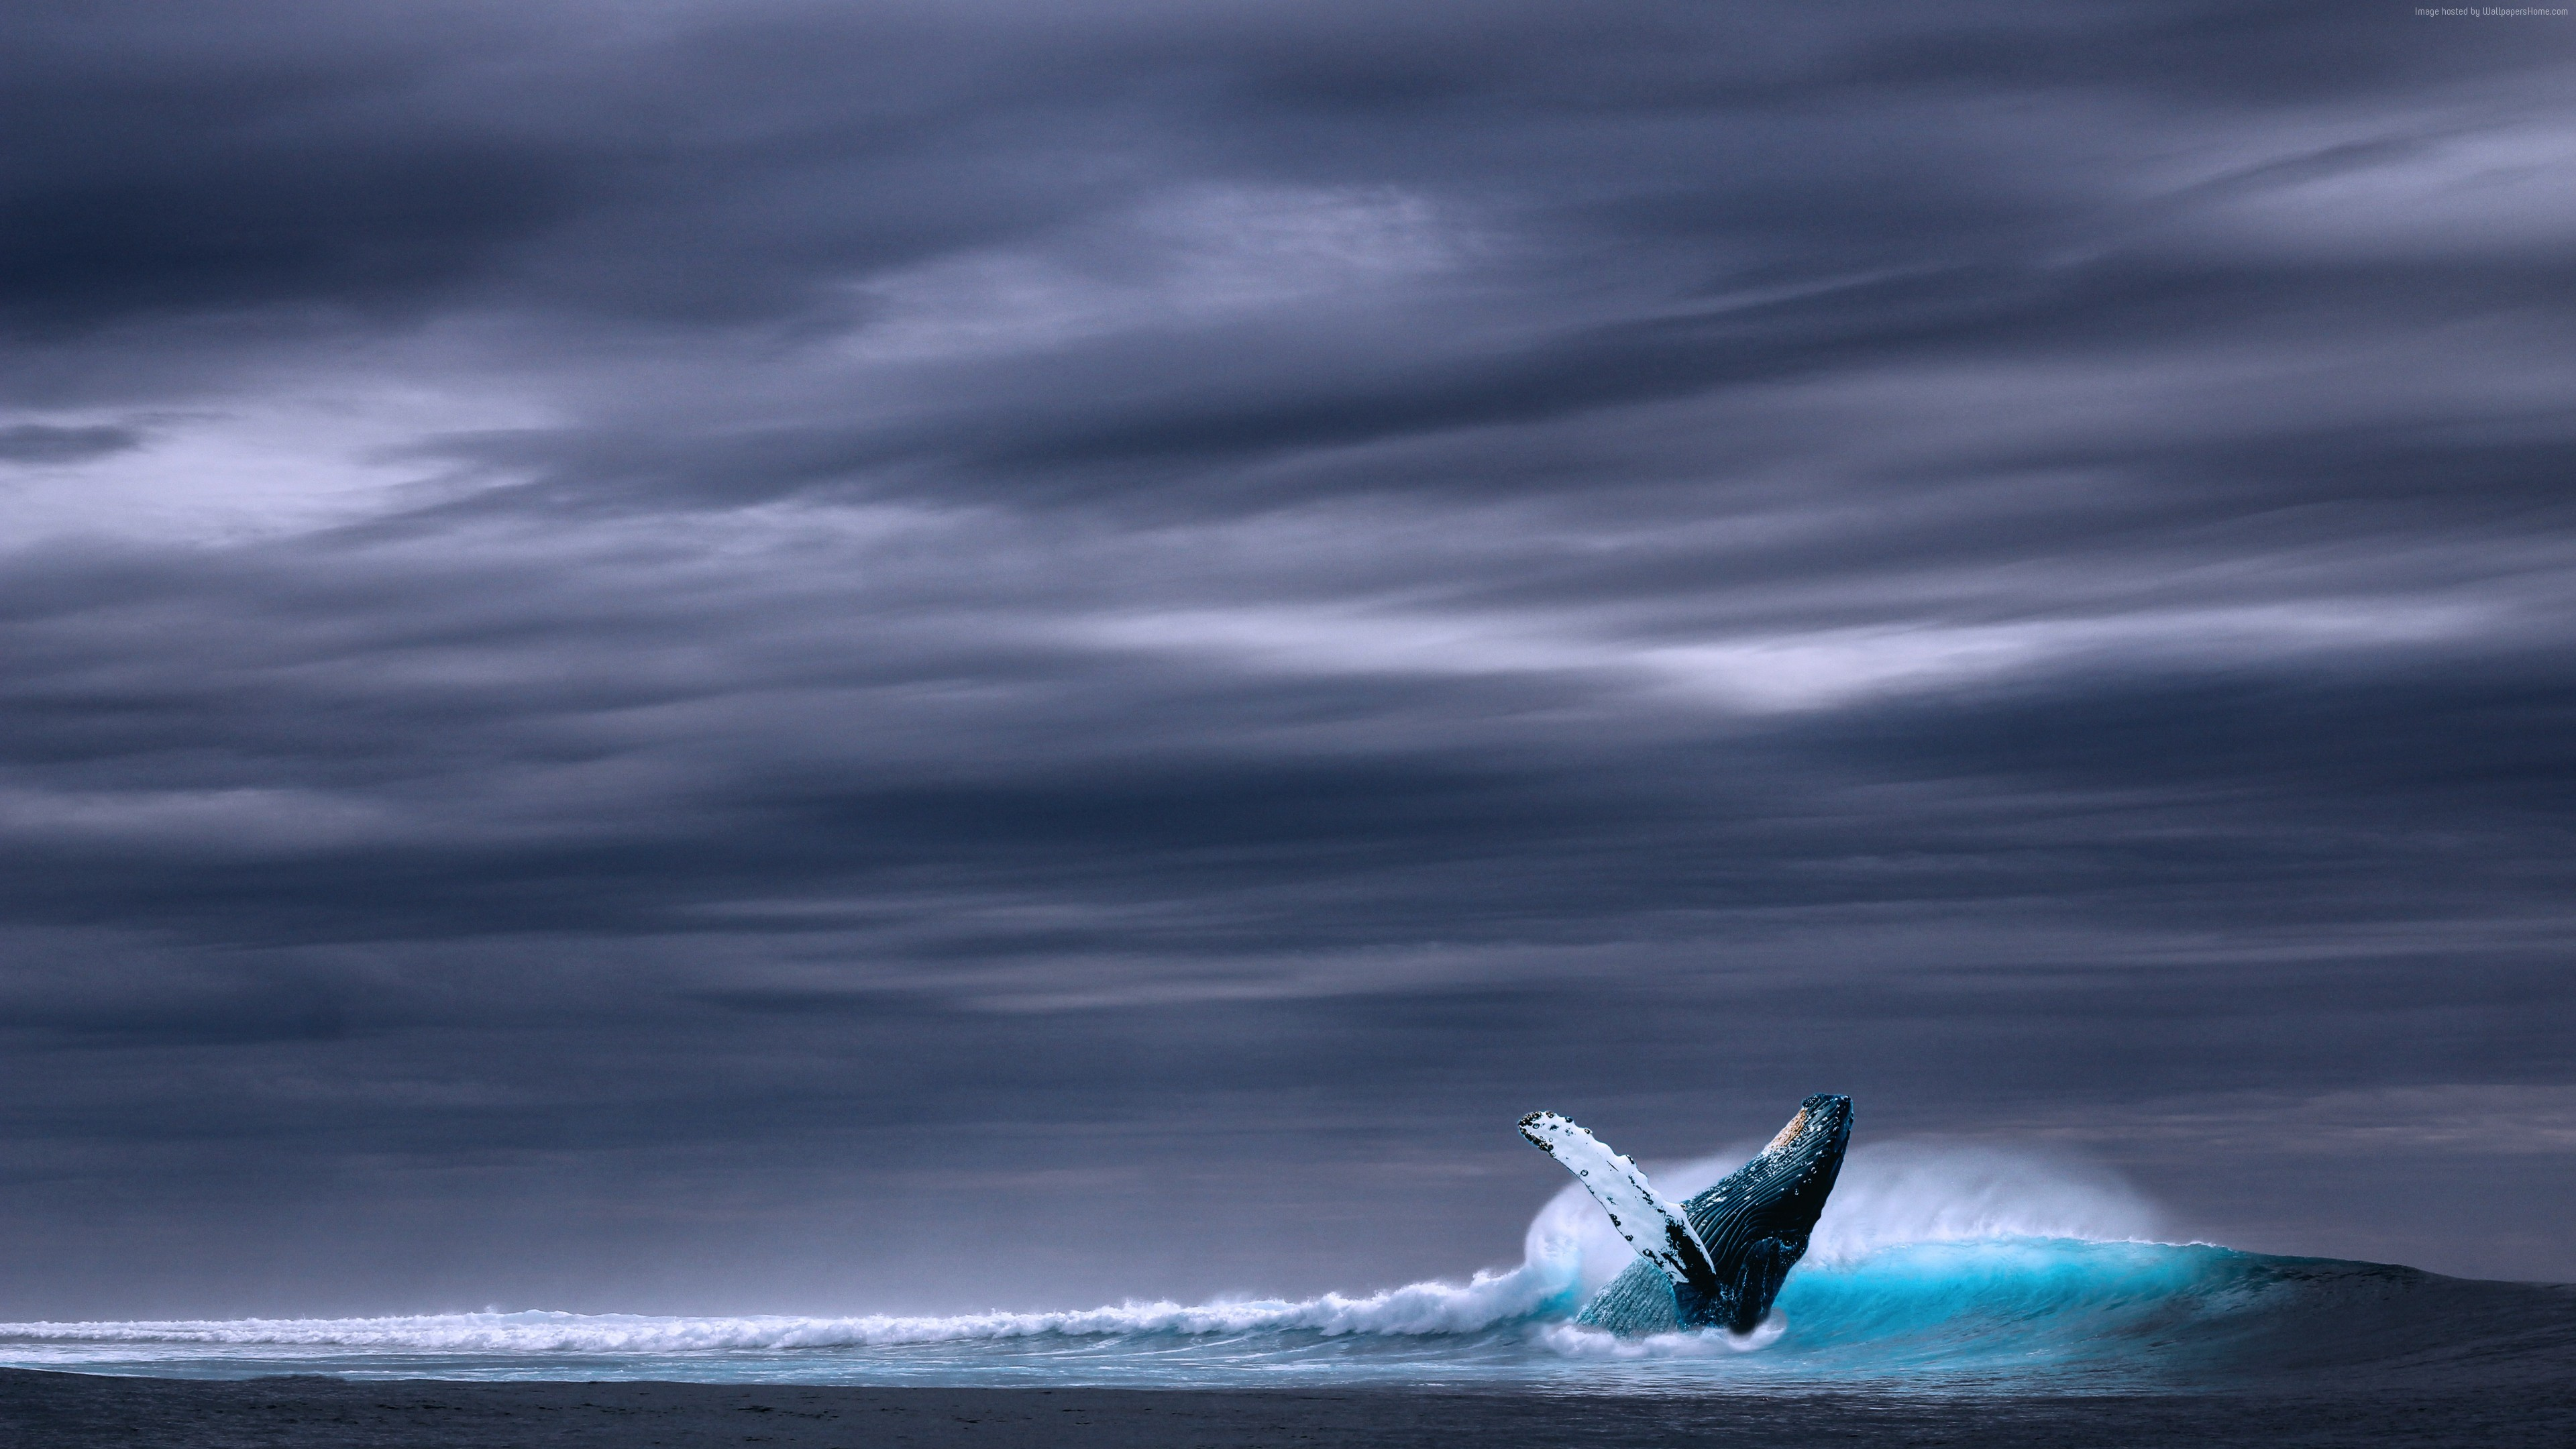 Wallpaper whale, ocean, sky, 5k, Animals